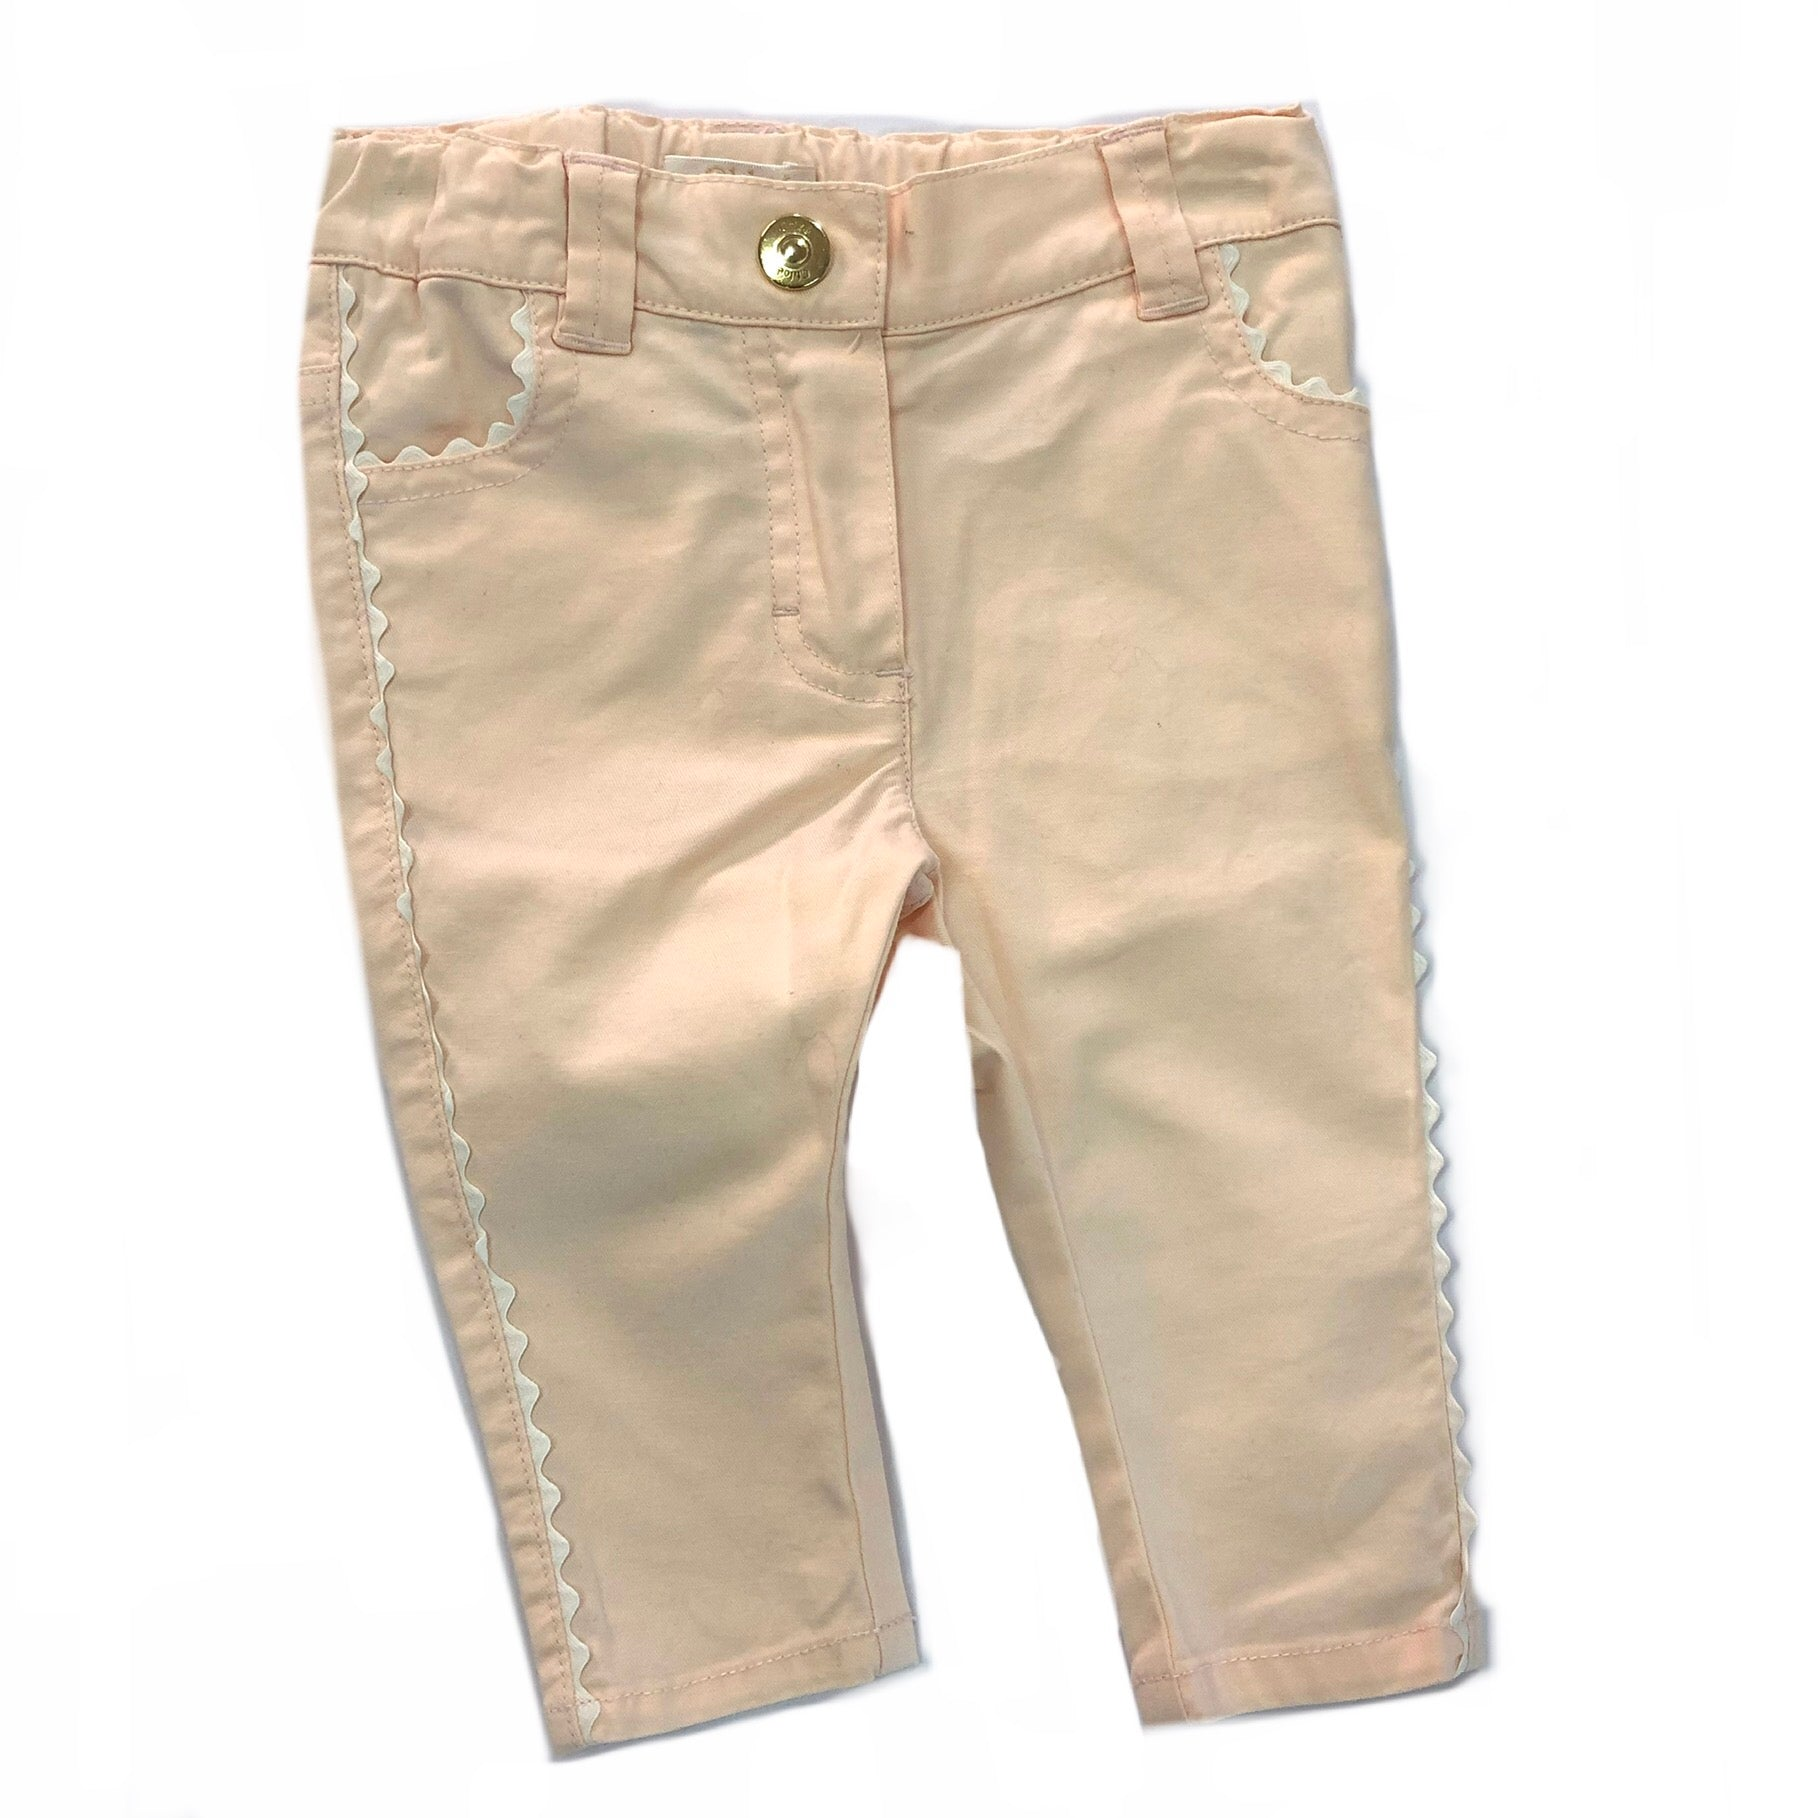 Girls Size 000 Chloe pants